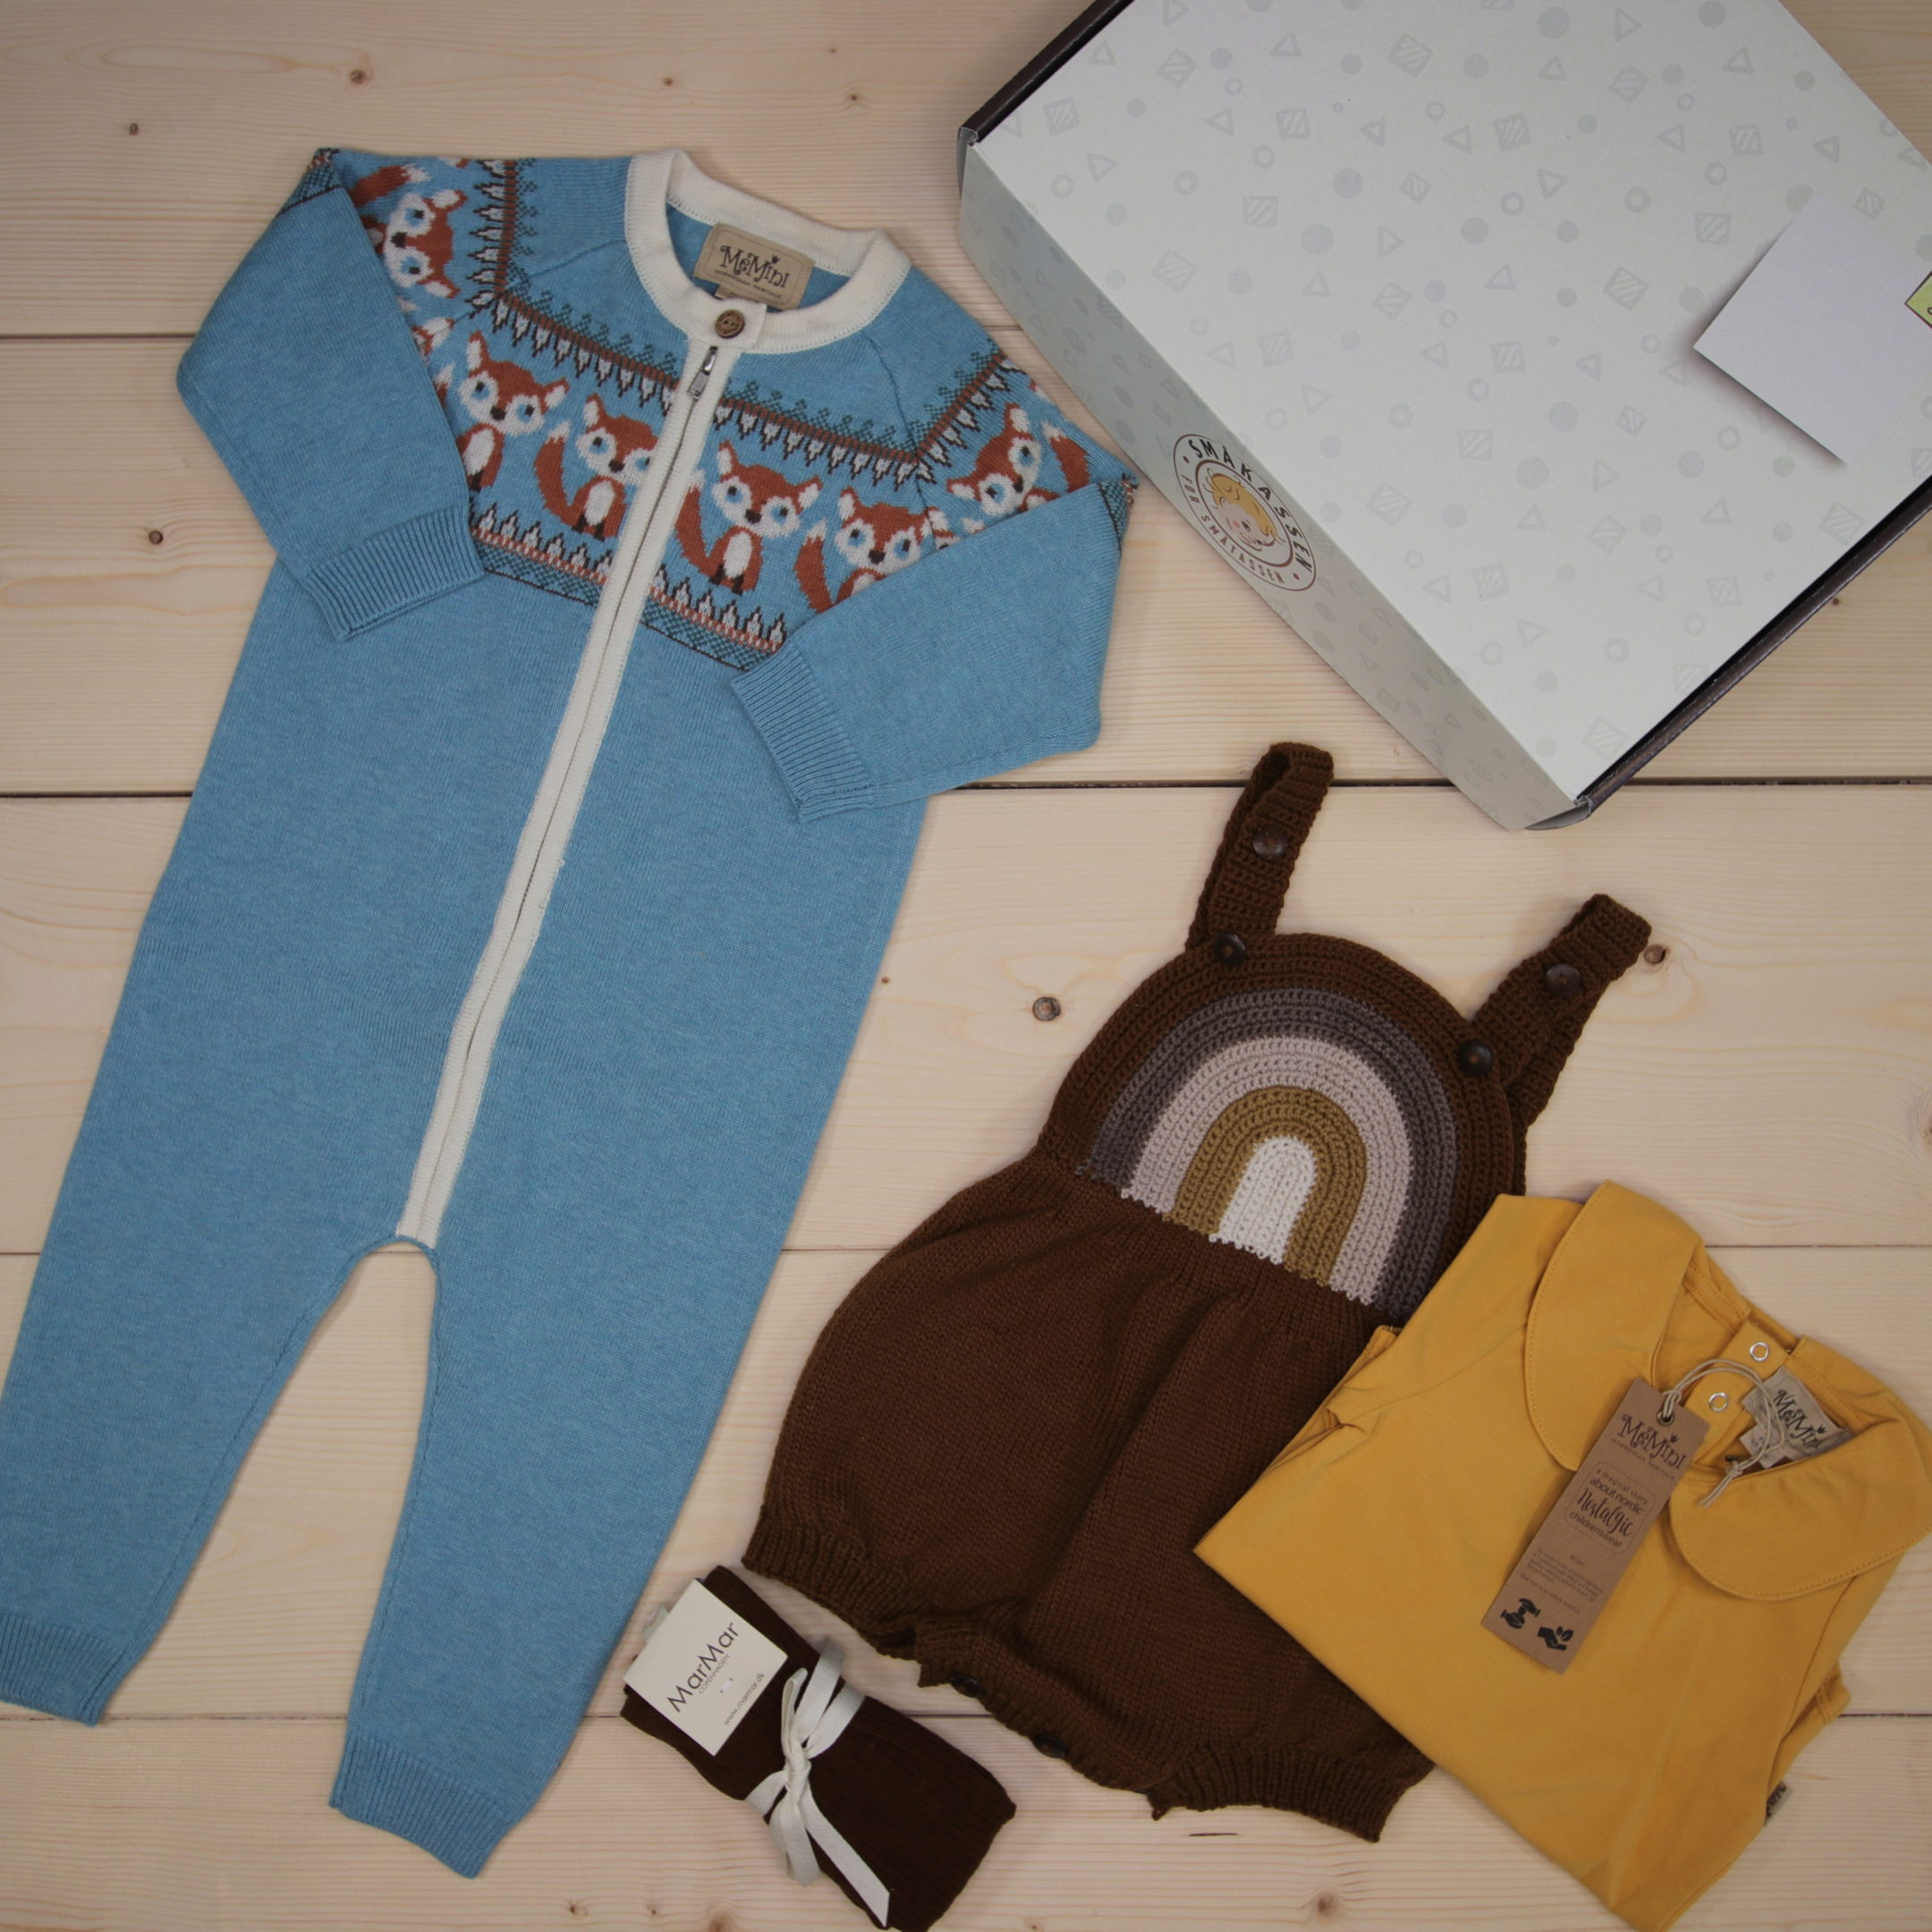 This is a 125 GBP* Småkassen that we prepared for a boy  in the styles cute, cool, and colorful in size 80